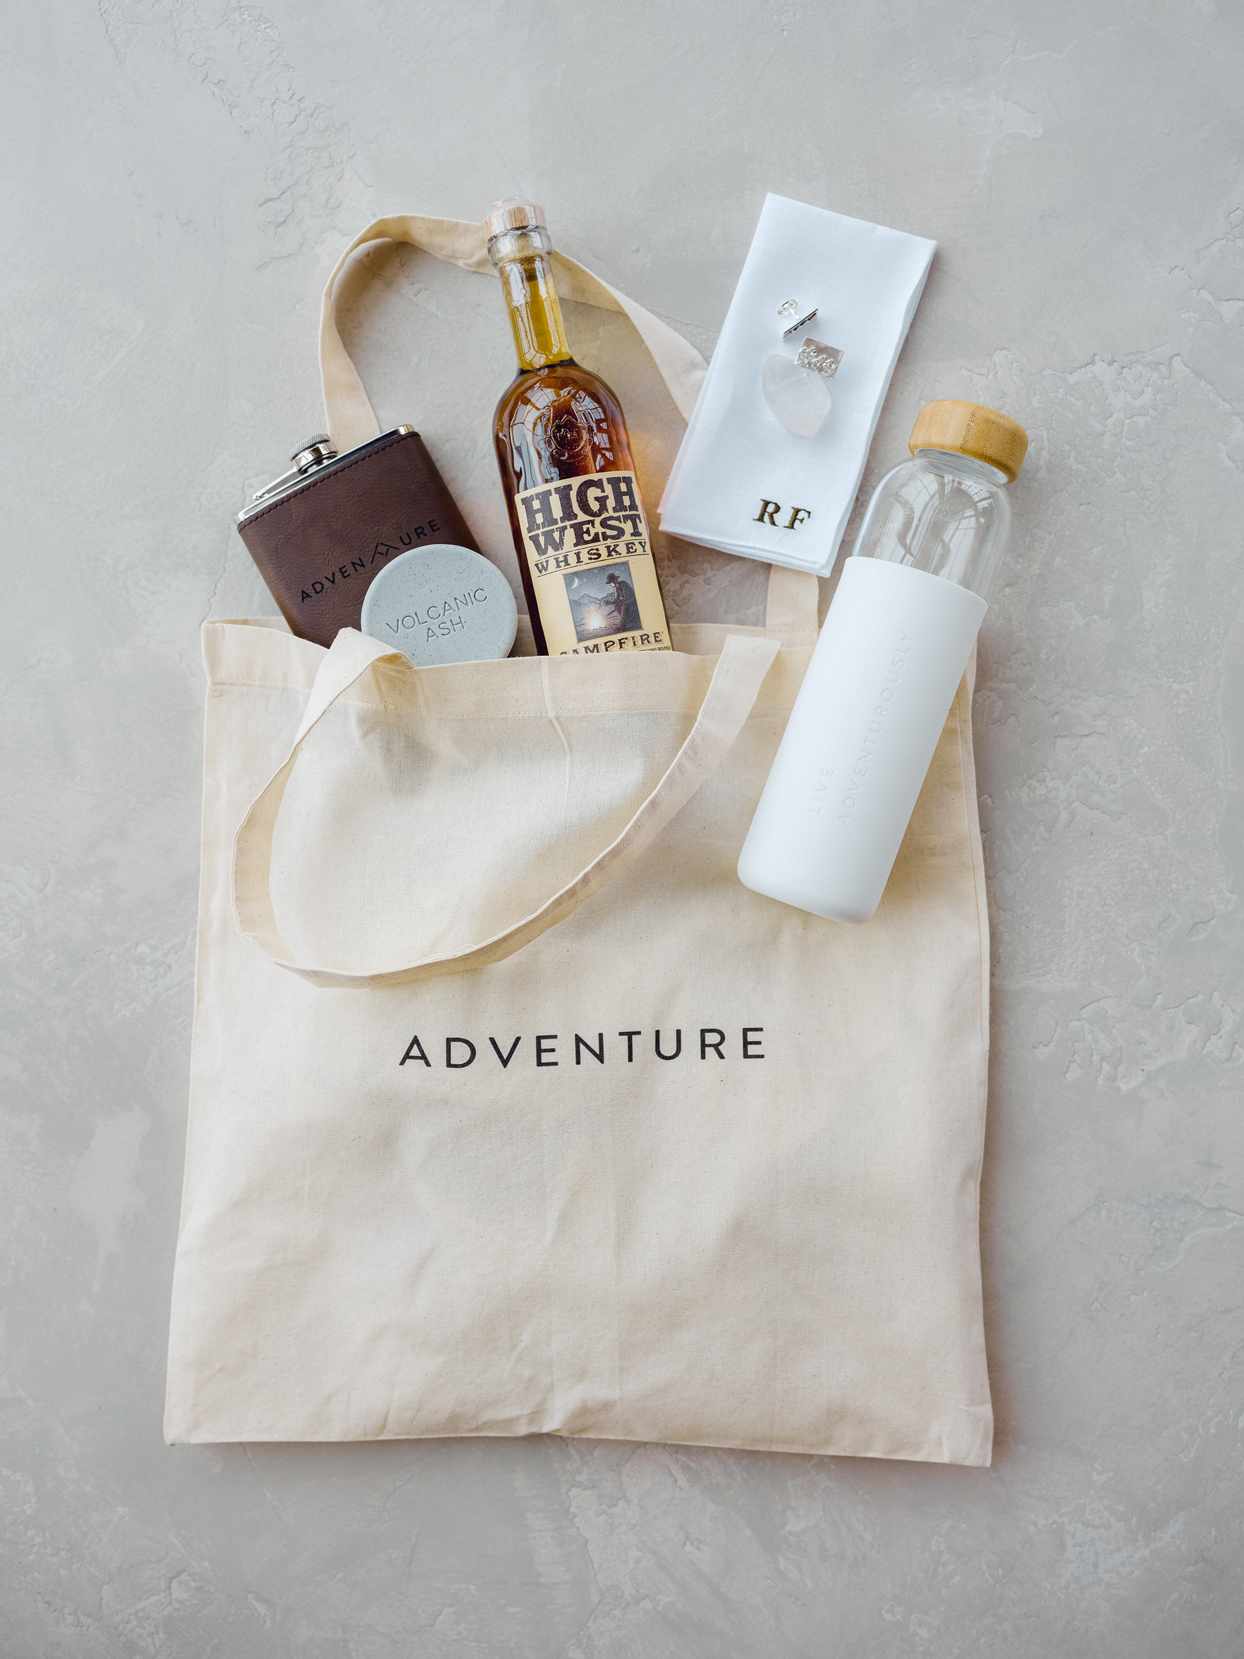 adventure welcome bag with various products